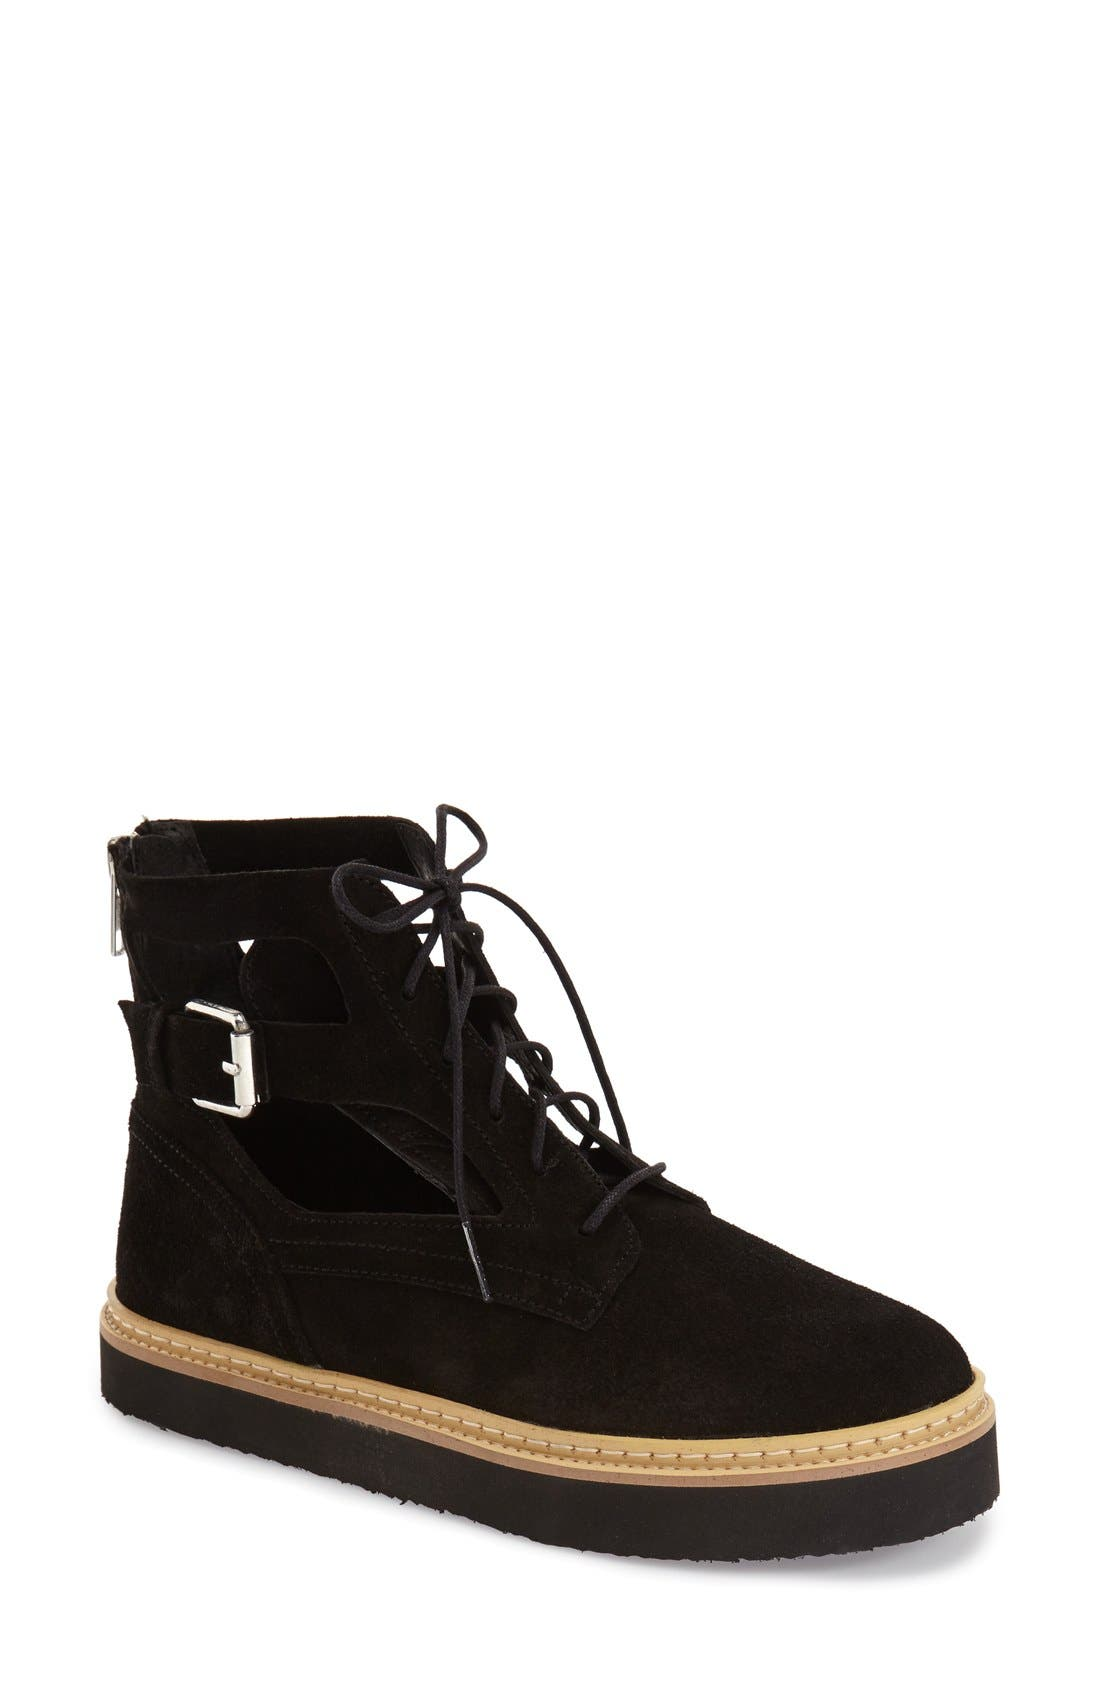 Alternate Image 1 Selected - Topshop 'Attack' Cutout Bootie (Women)